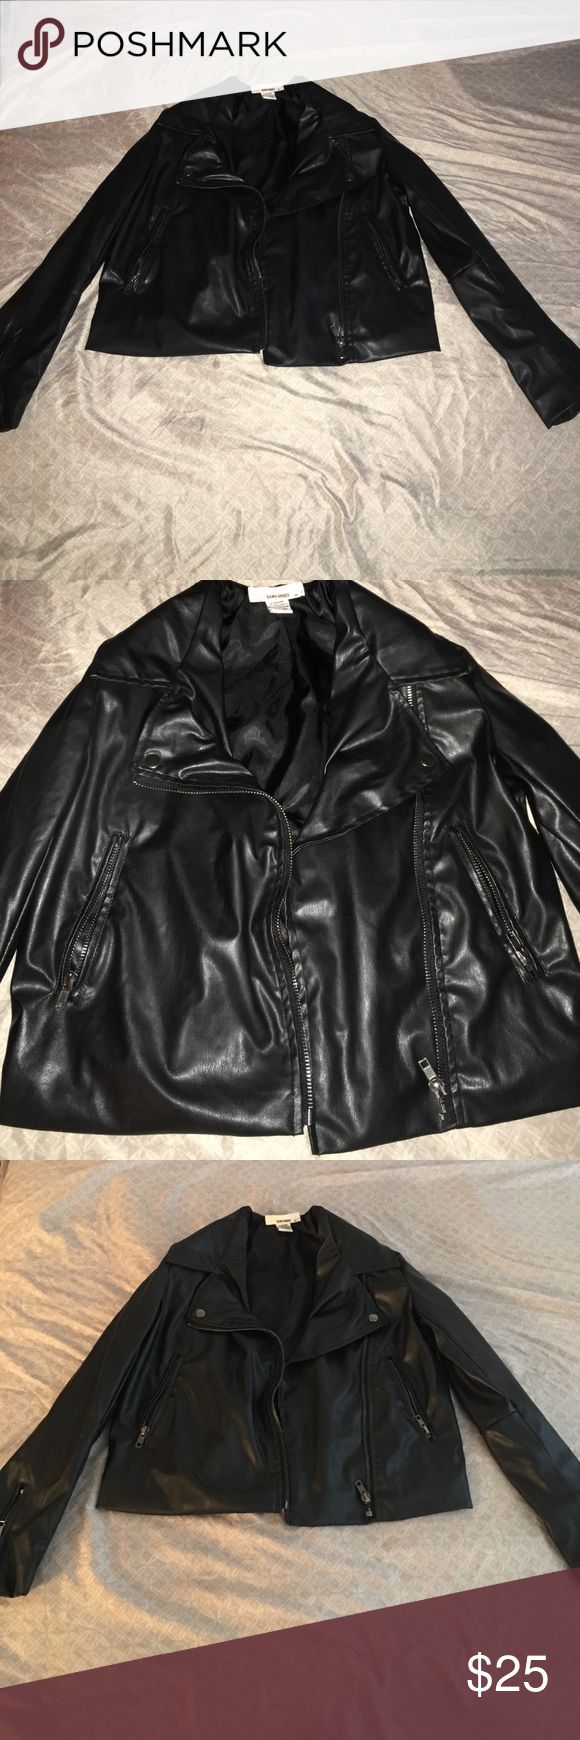 Faux leather jacket Black faux leather jacket in good condition. Perfect medium size. Never worn and not unif! UNIF Jackets & Coats